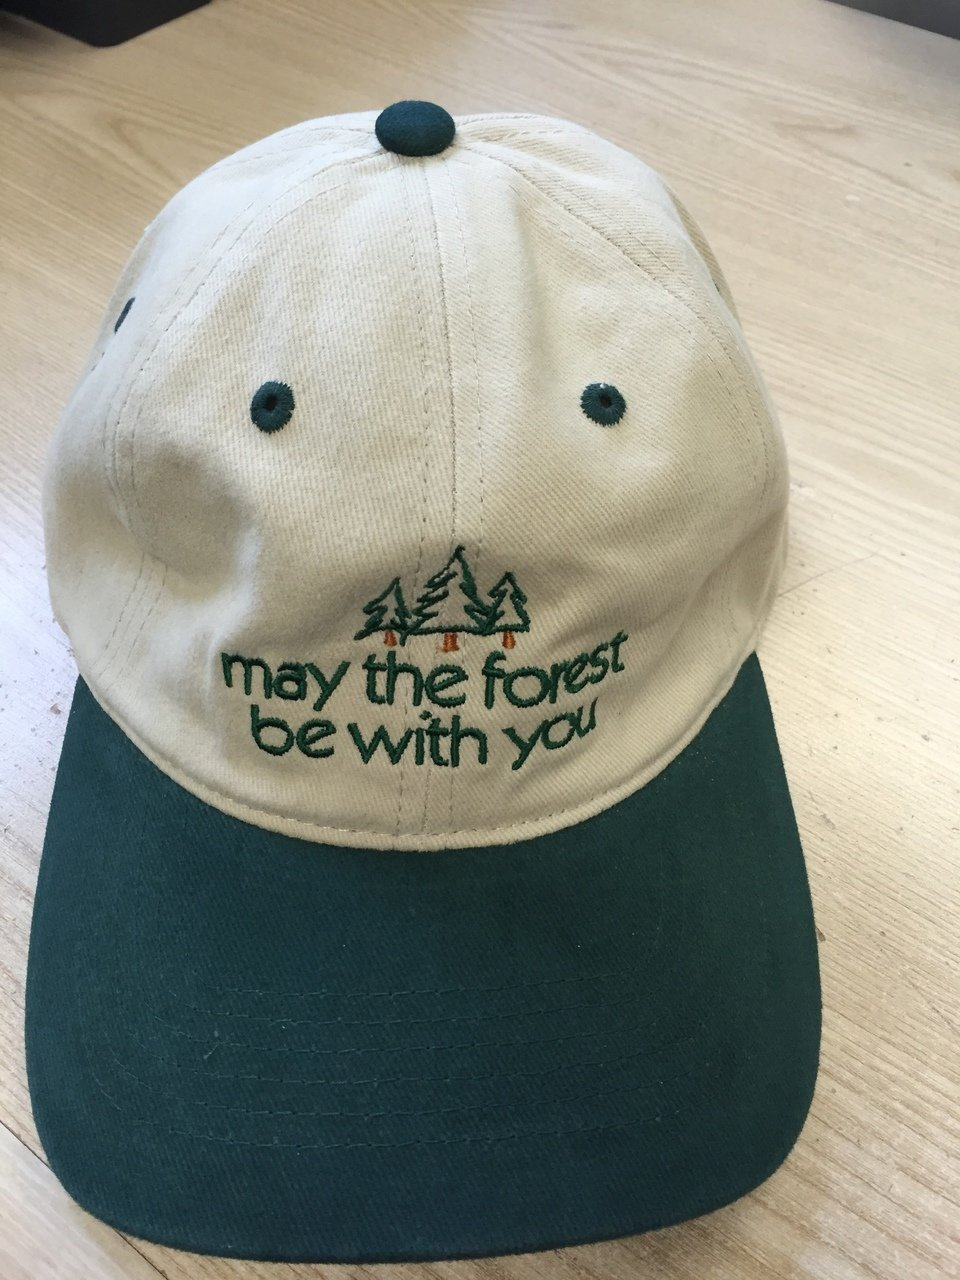 May the Forest Be with you baseball cap